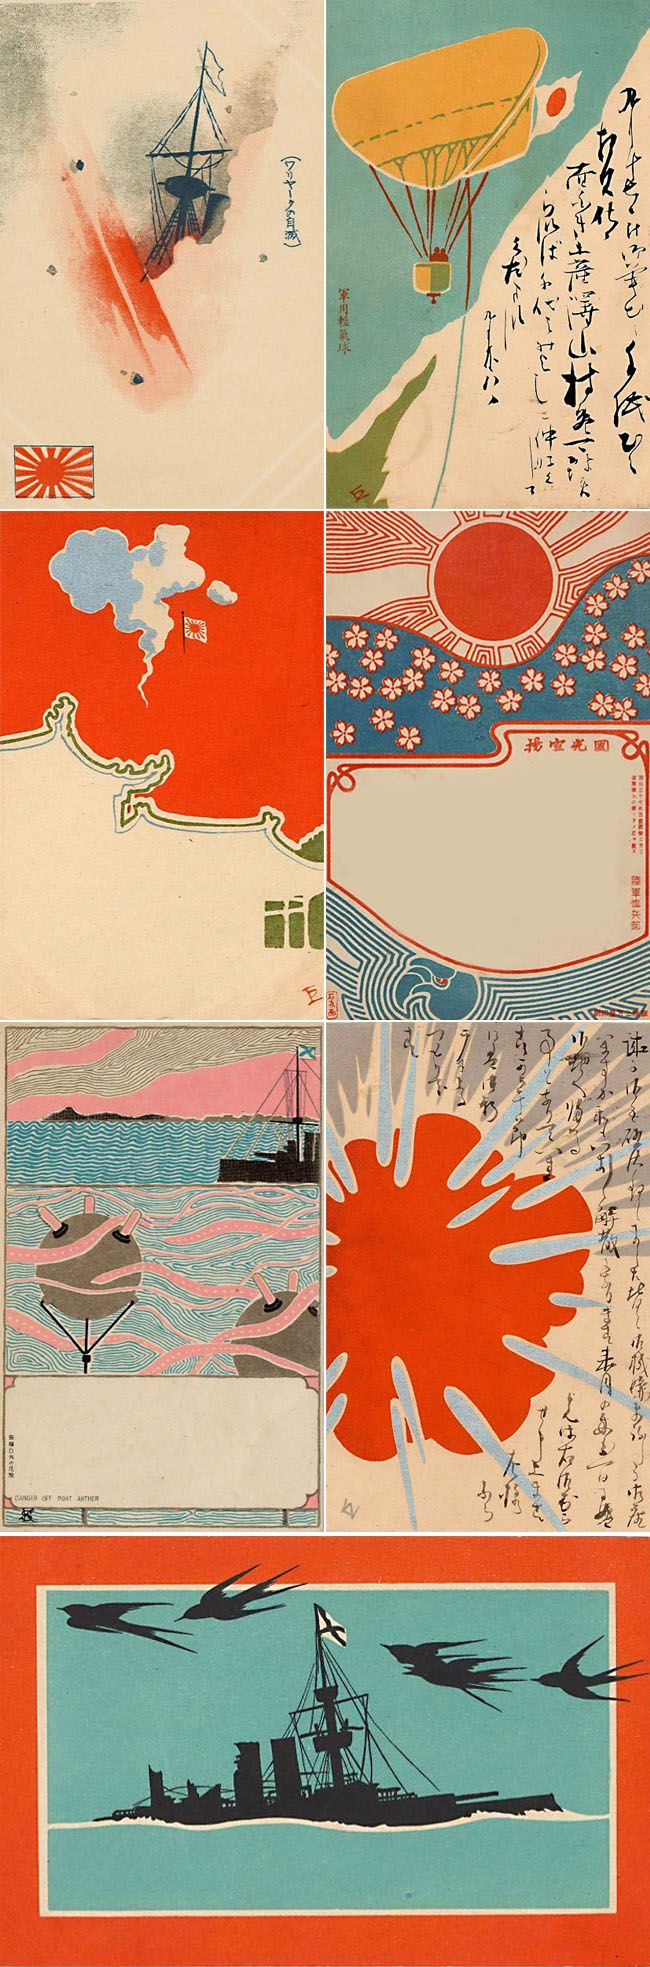 vintage Japanese postcards